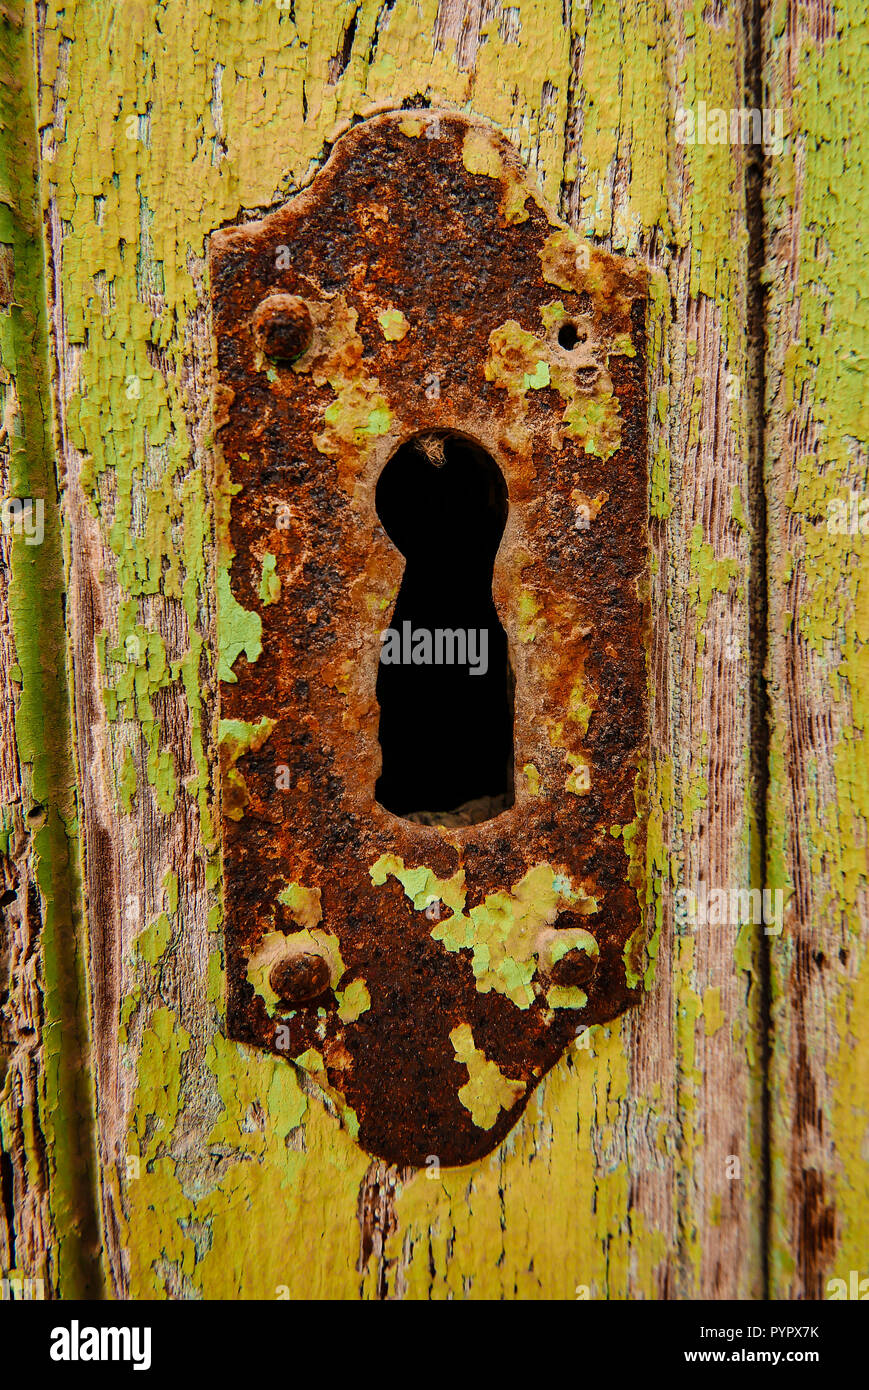 Old rusty keyhole in wooden door with peeling paint on Calle Marques De Cubas in the village of Jacarilla, Spain Stock Photo